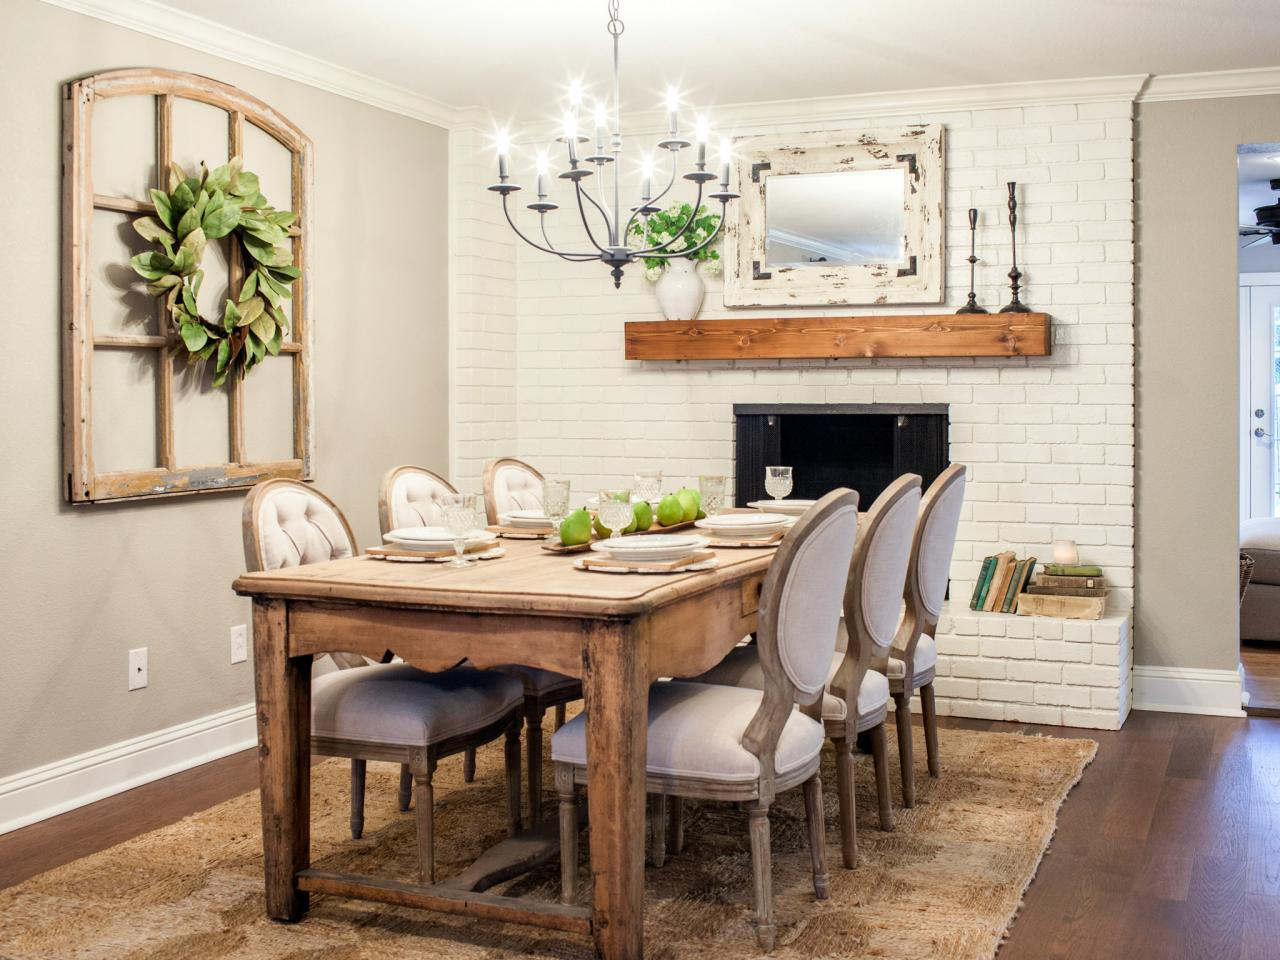 Fixer upper archives for Kitchen and dining room decor